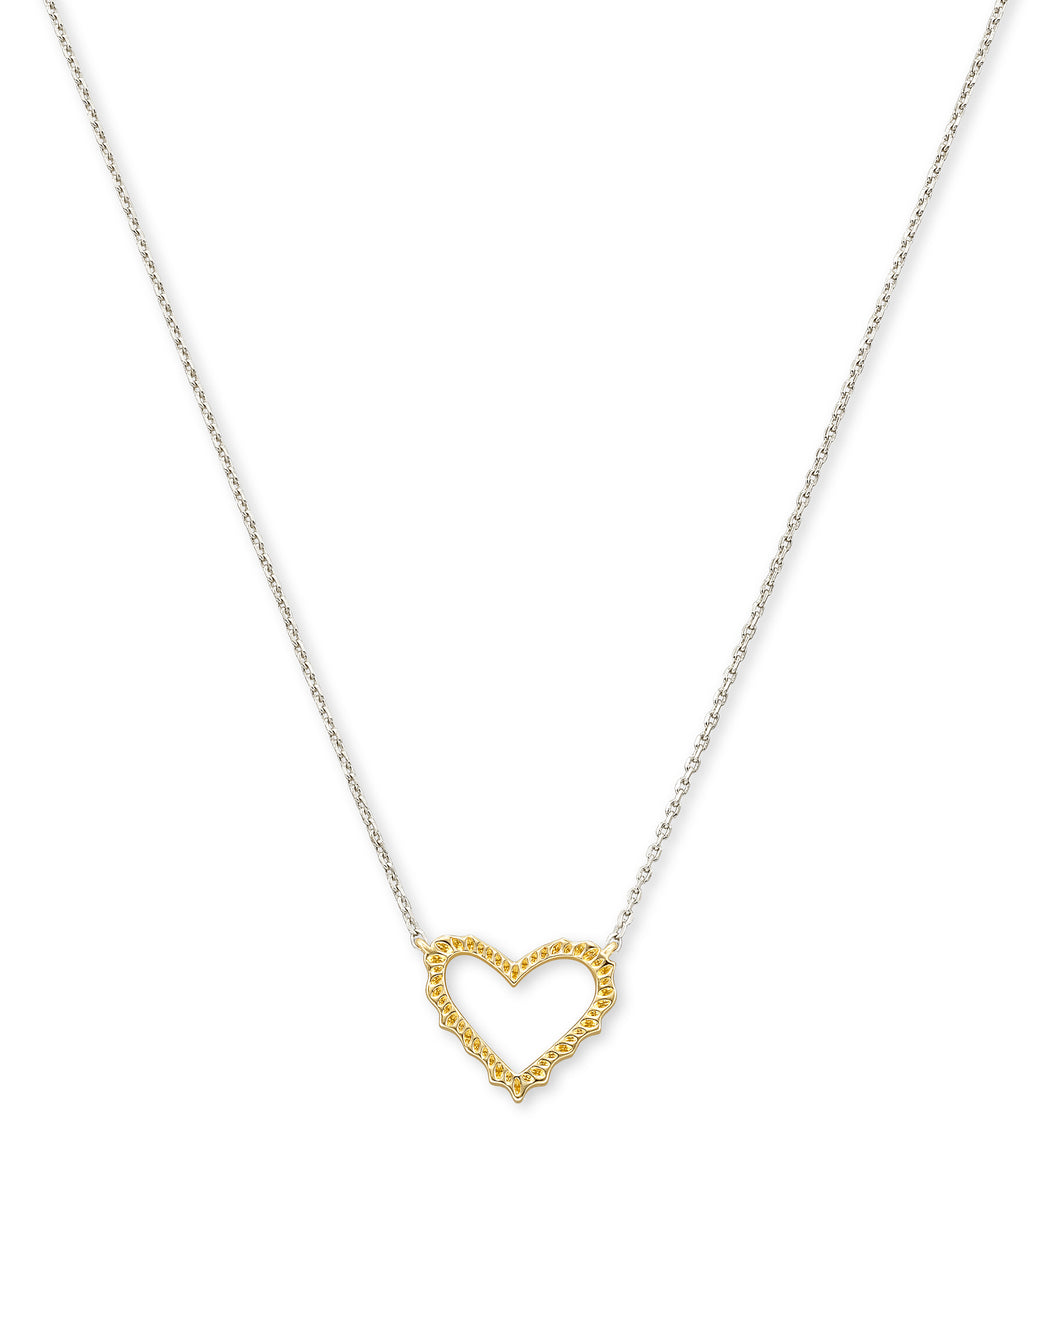 Sophee Heart Small Pendant Necklace